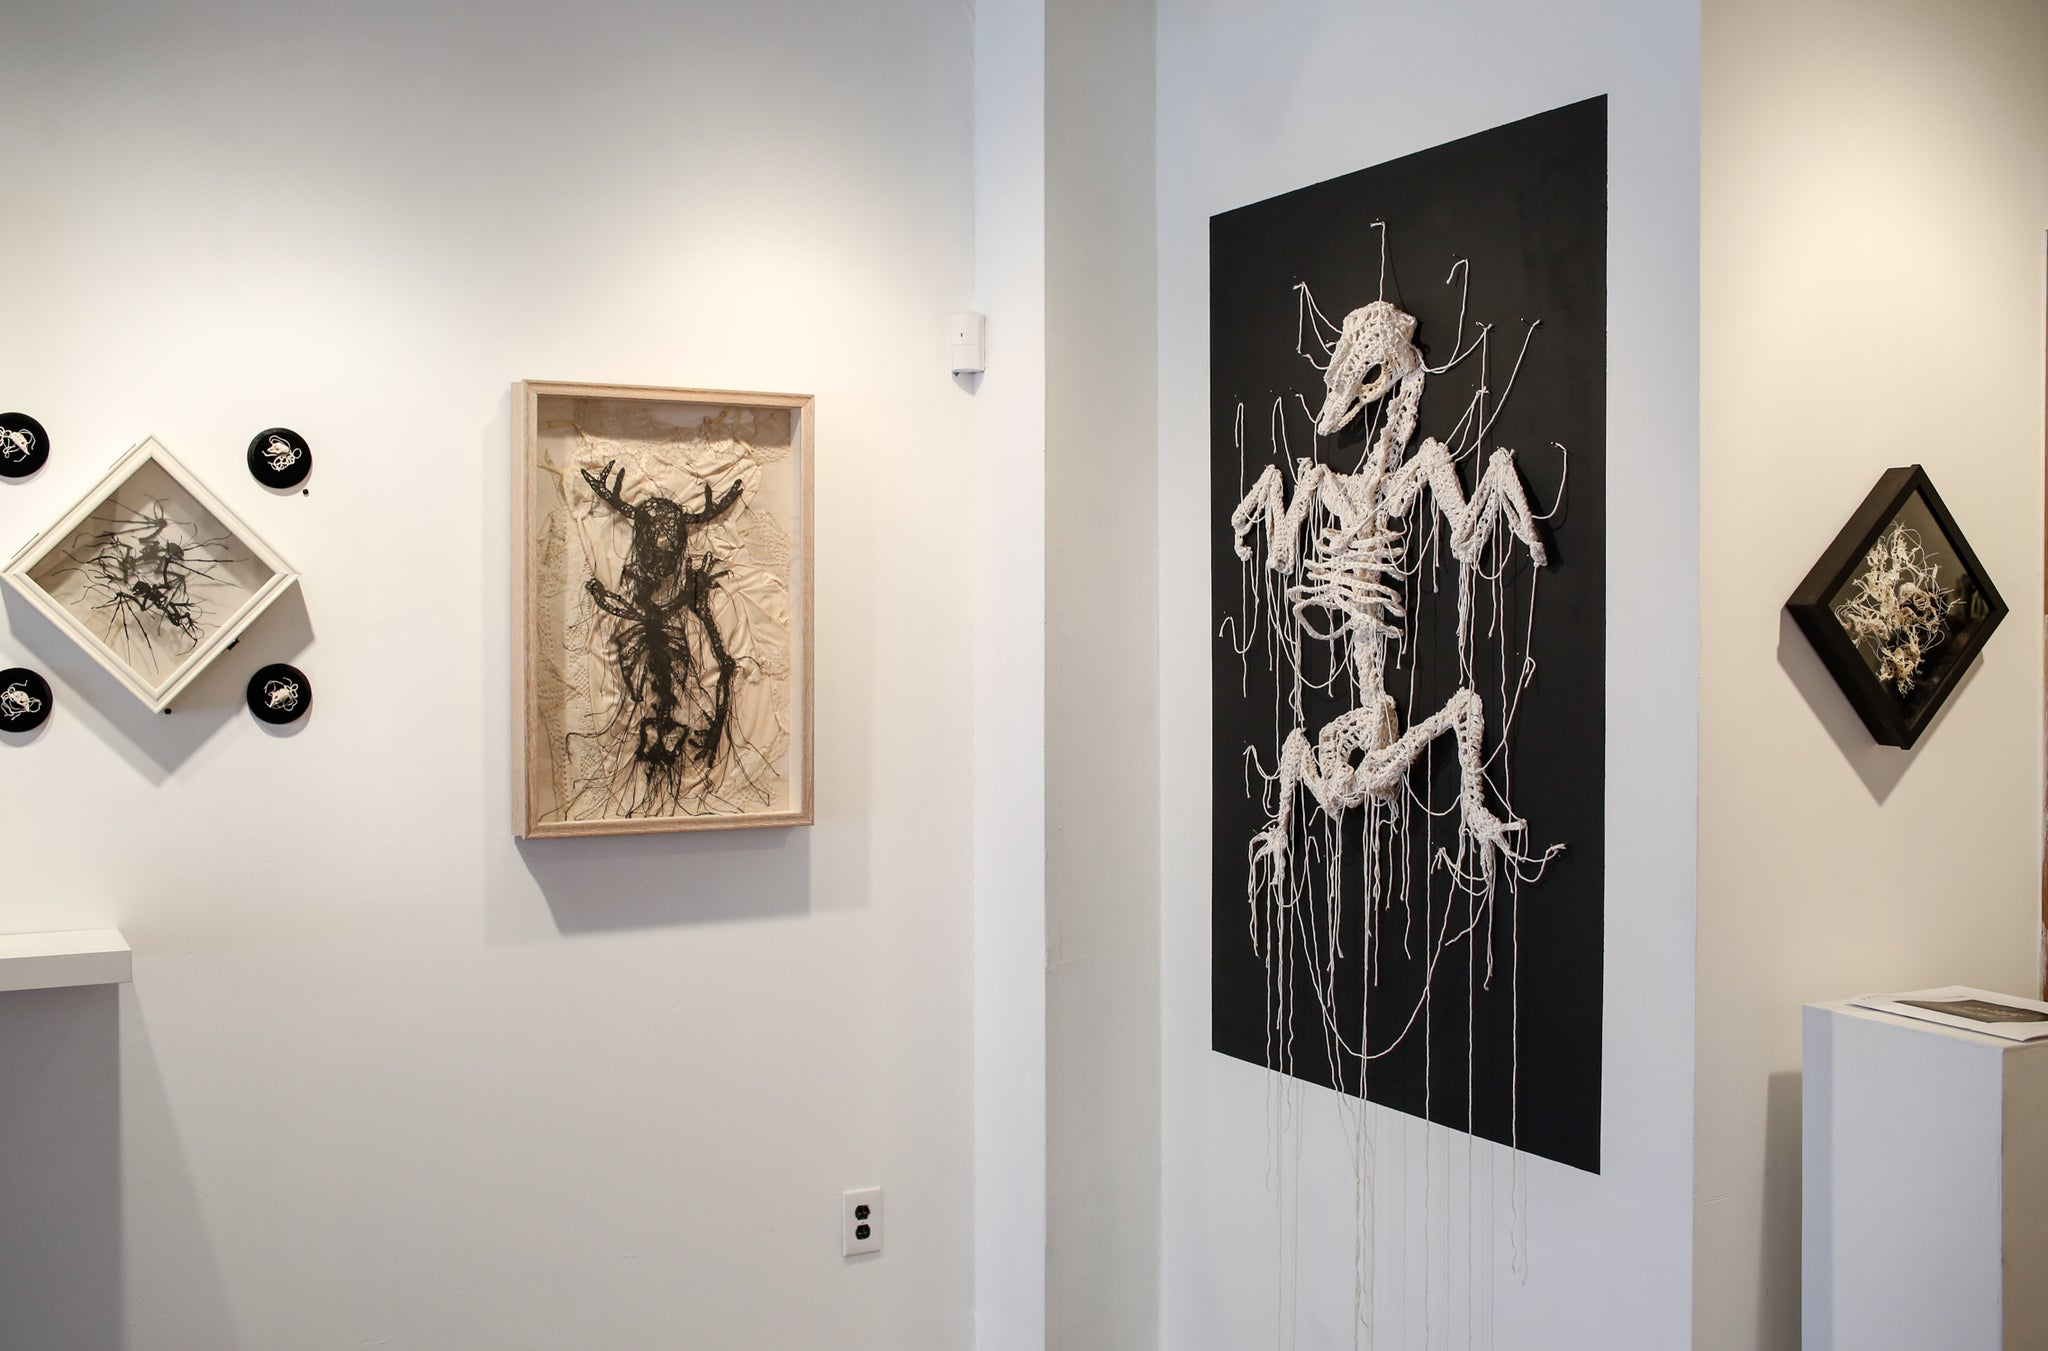 Caitlin McCormack at Paradigm Gallery + Studio